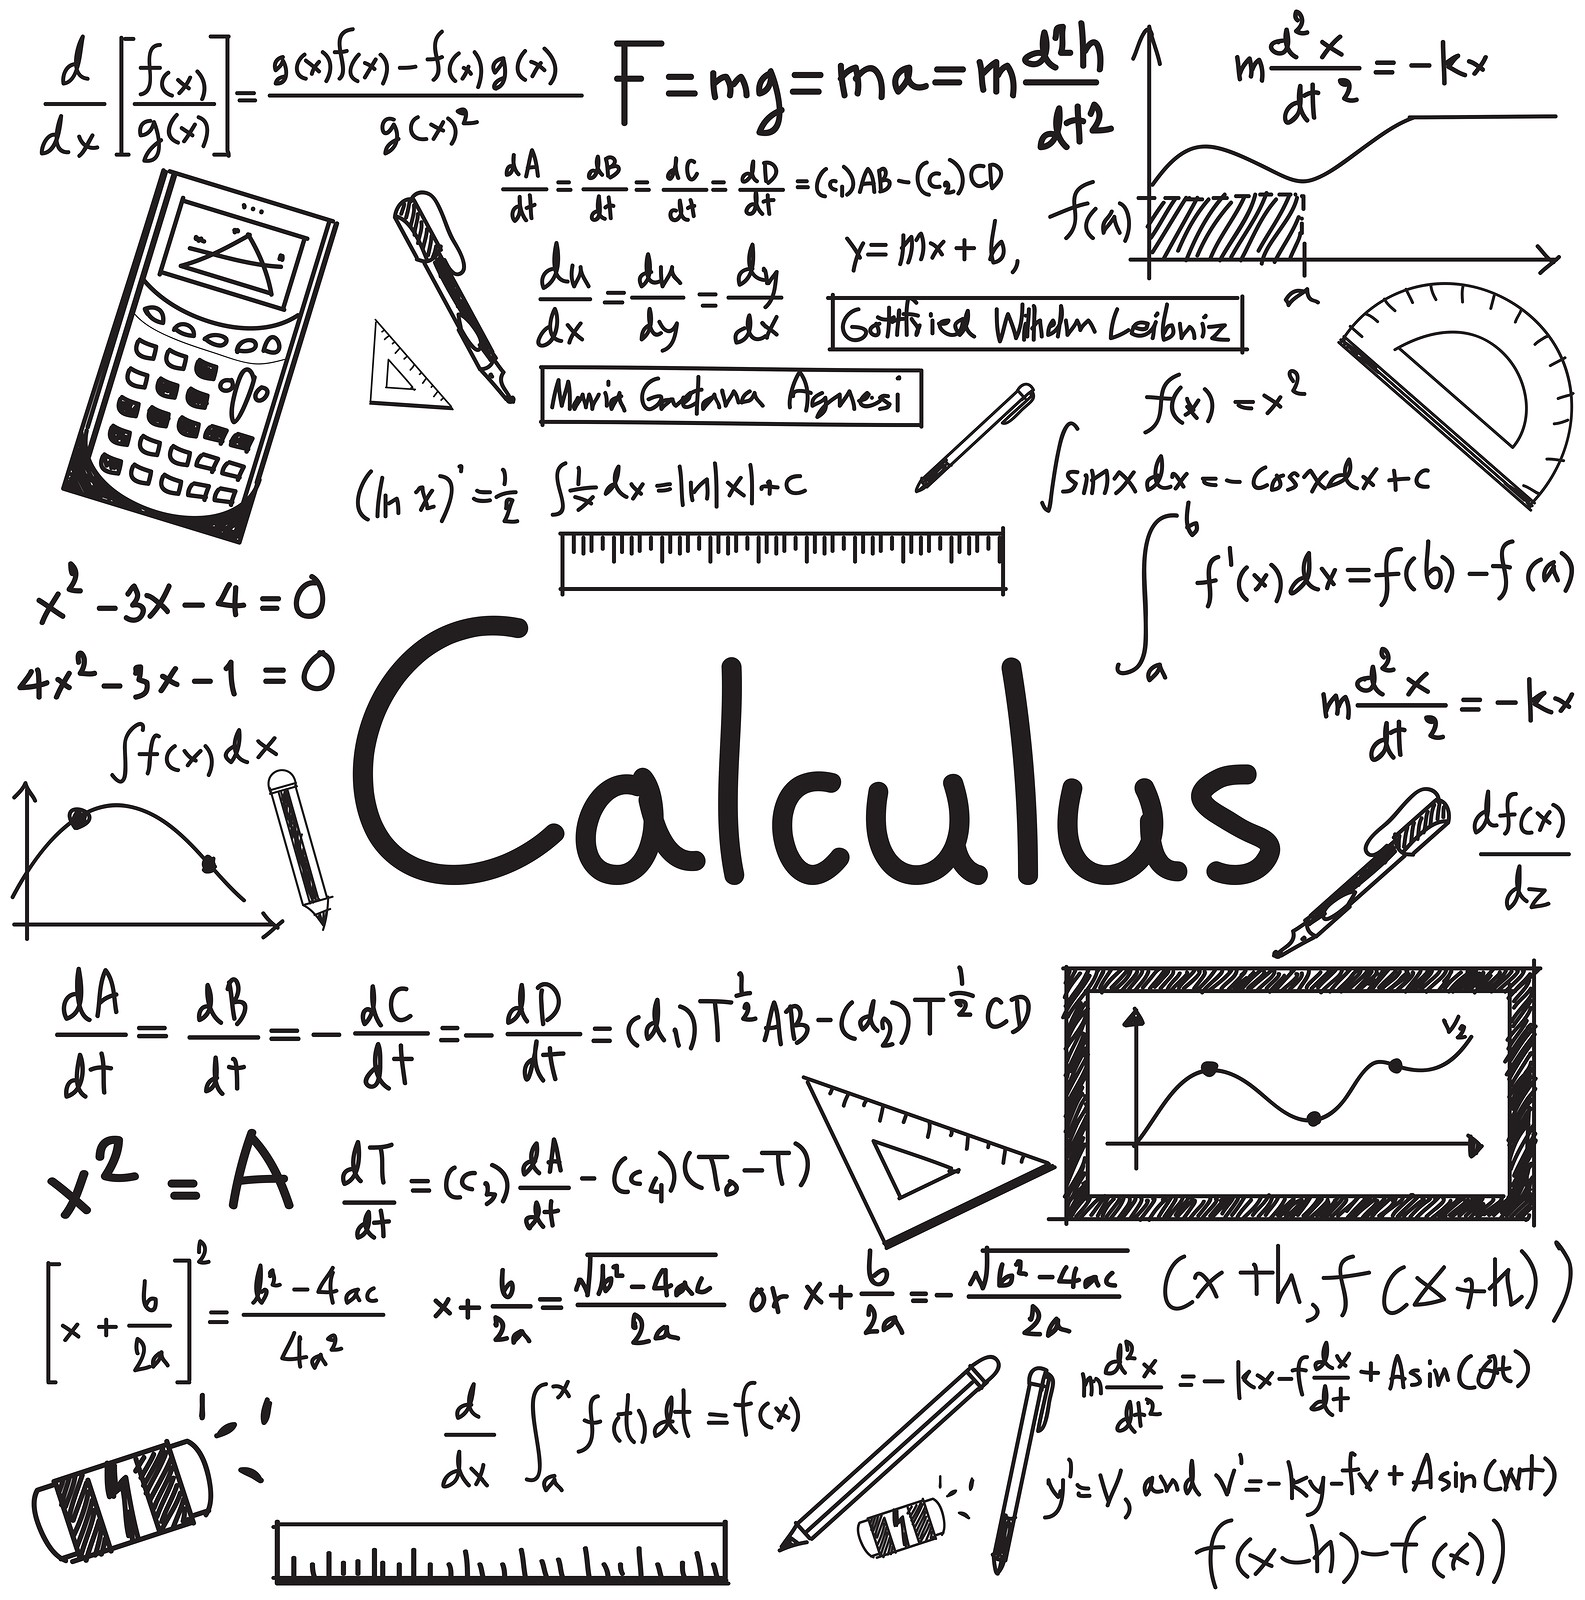 Different equations used in calculus